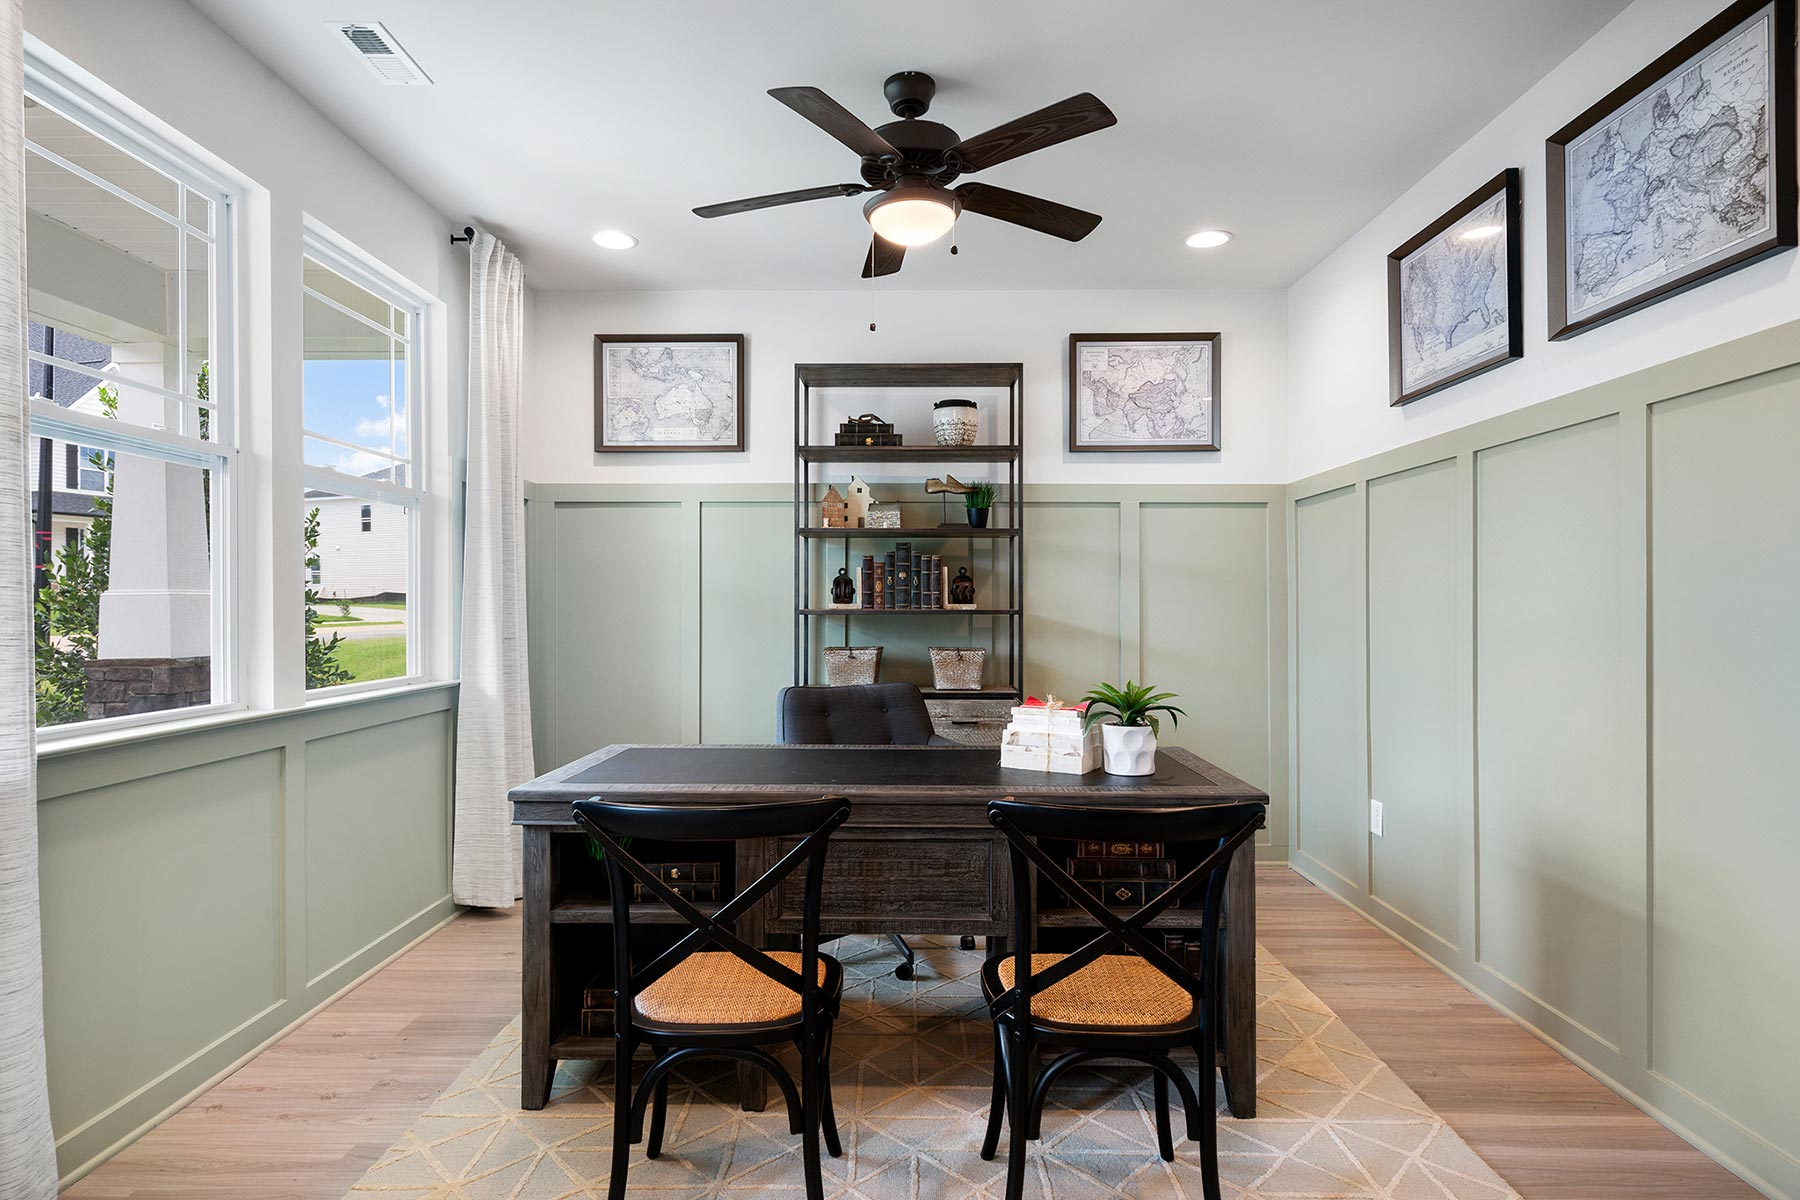 Amelia Plan Study Room at Briar Gate in Fuquay-Varina North Carolina by Mattamy Homes